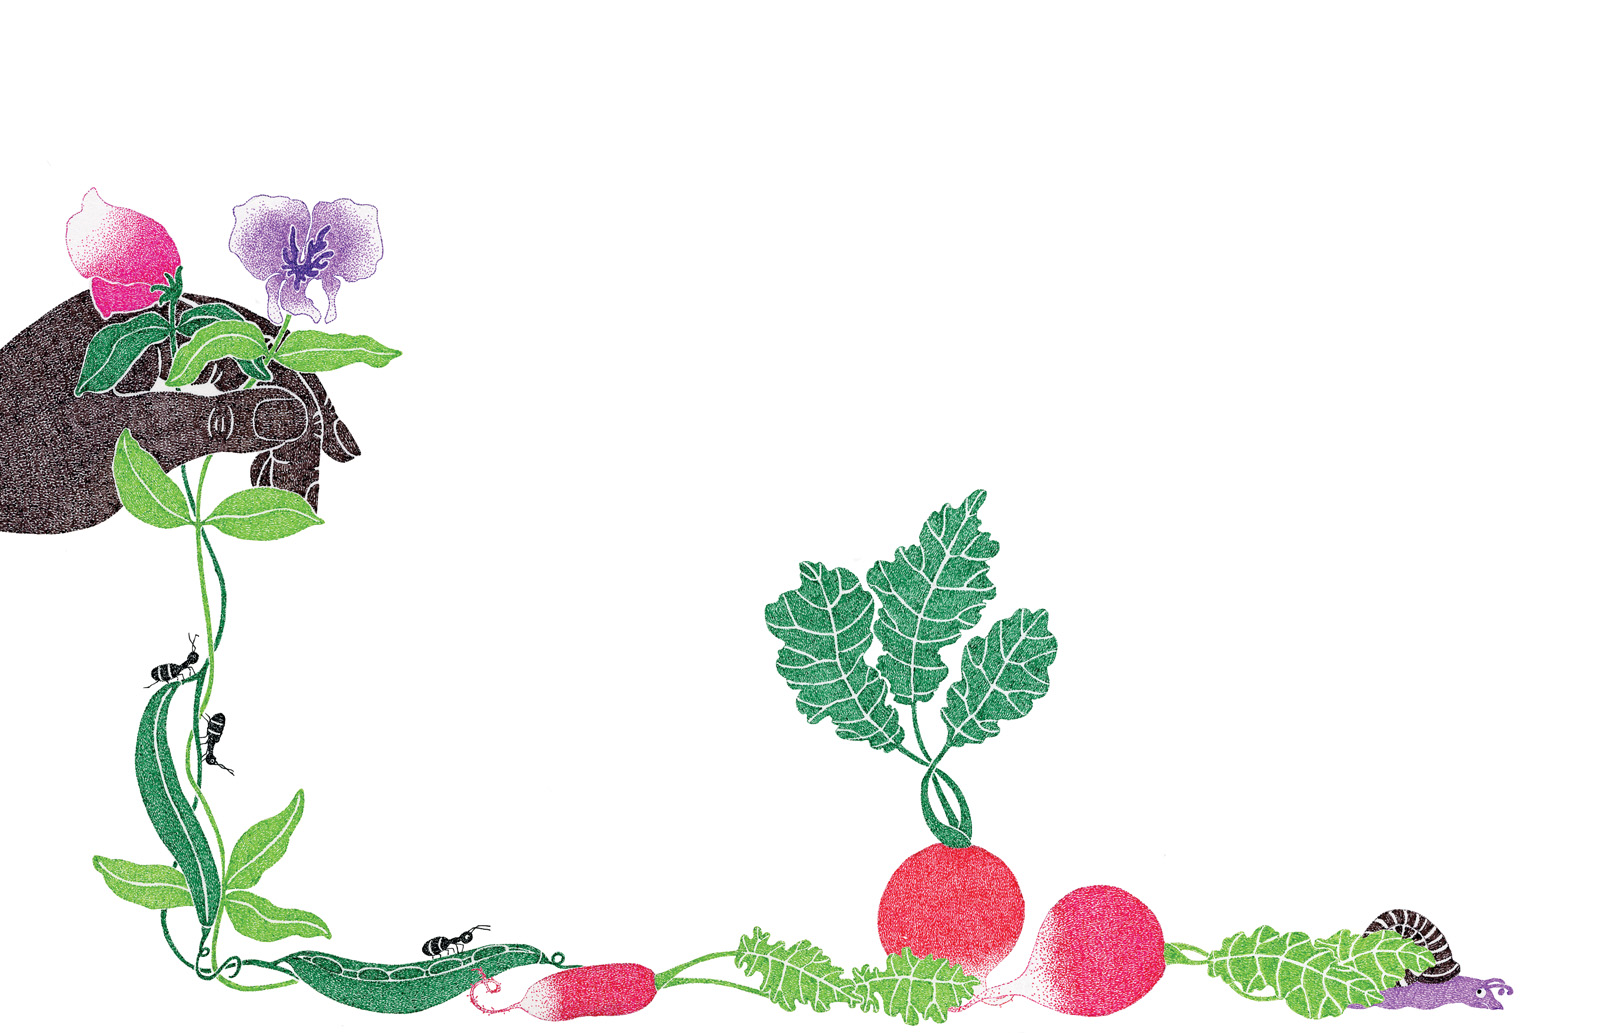 Gardening illustration by Malin Rosenqvist